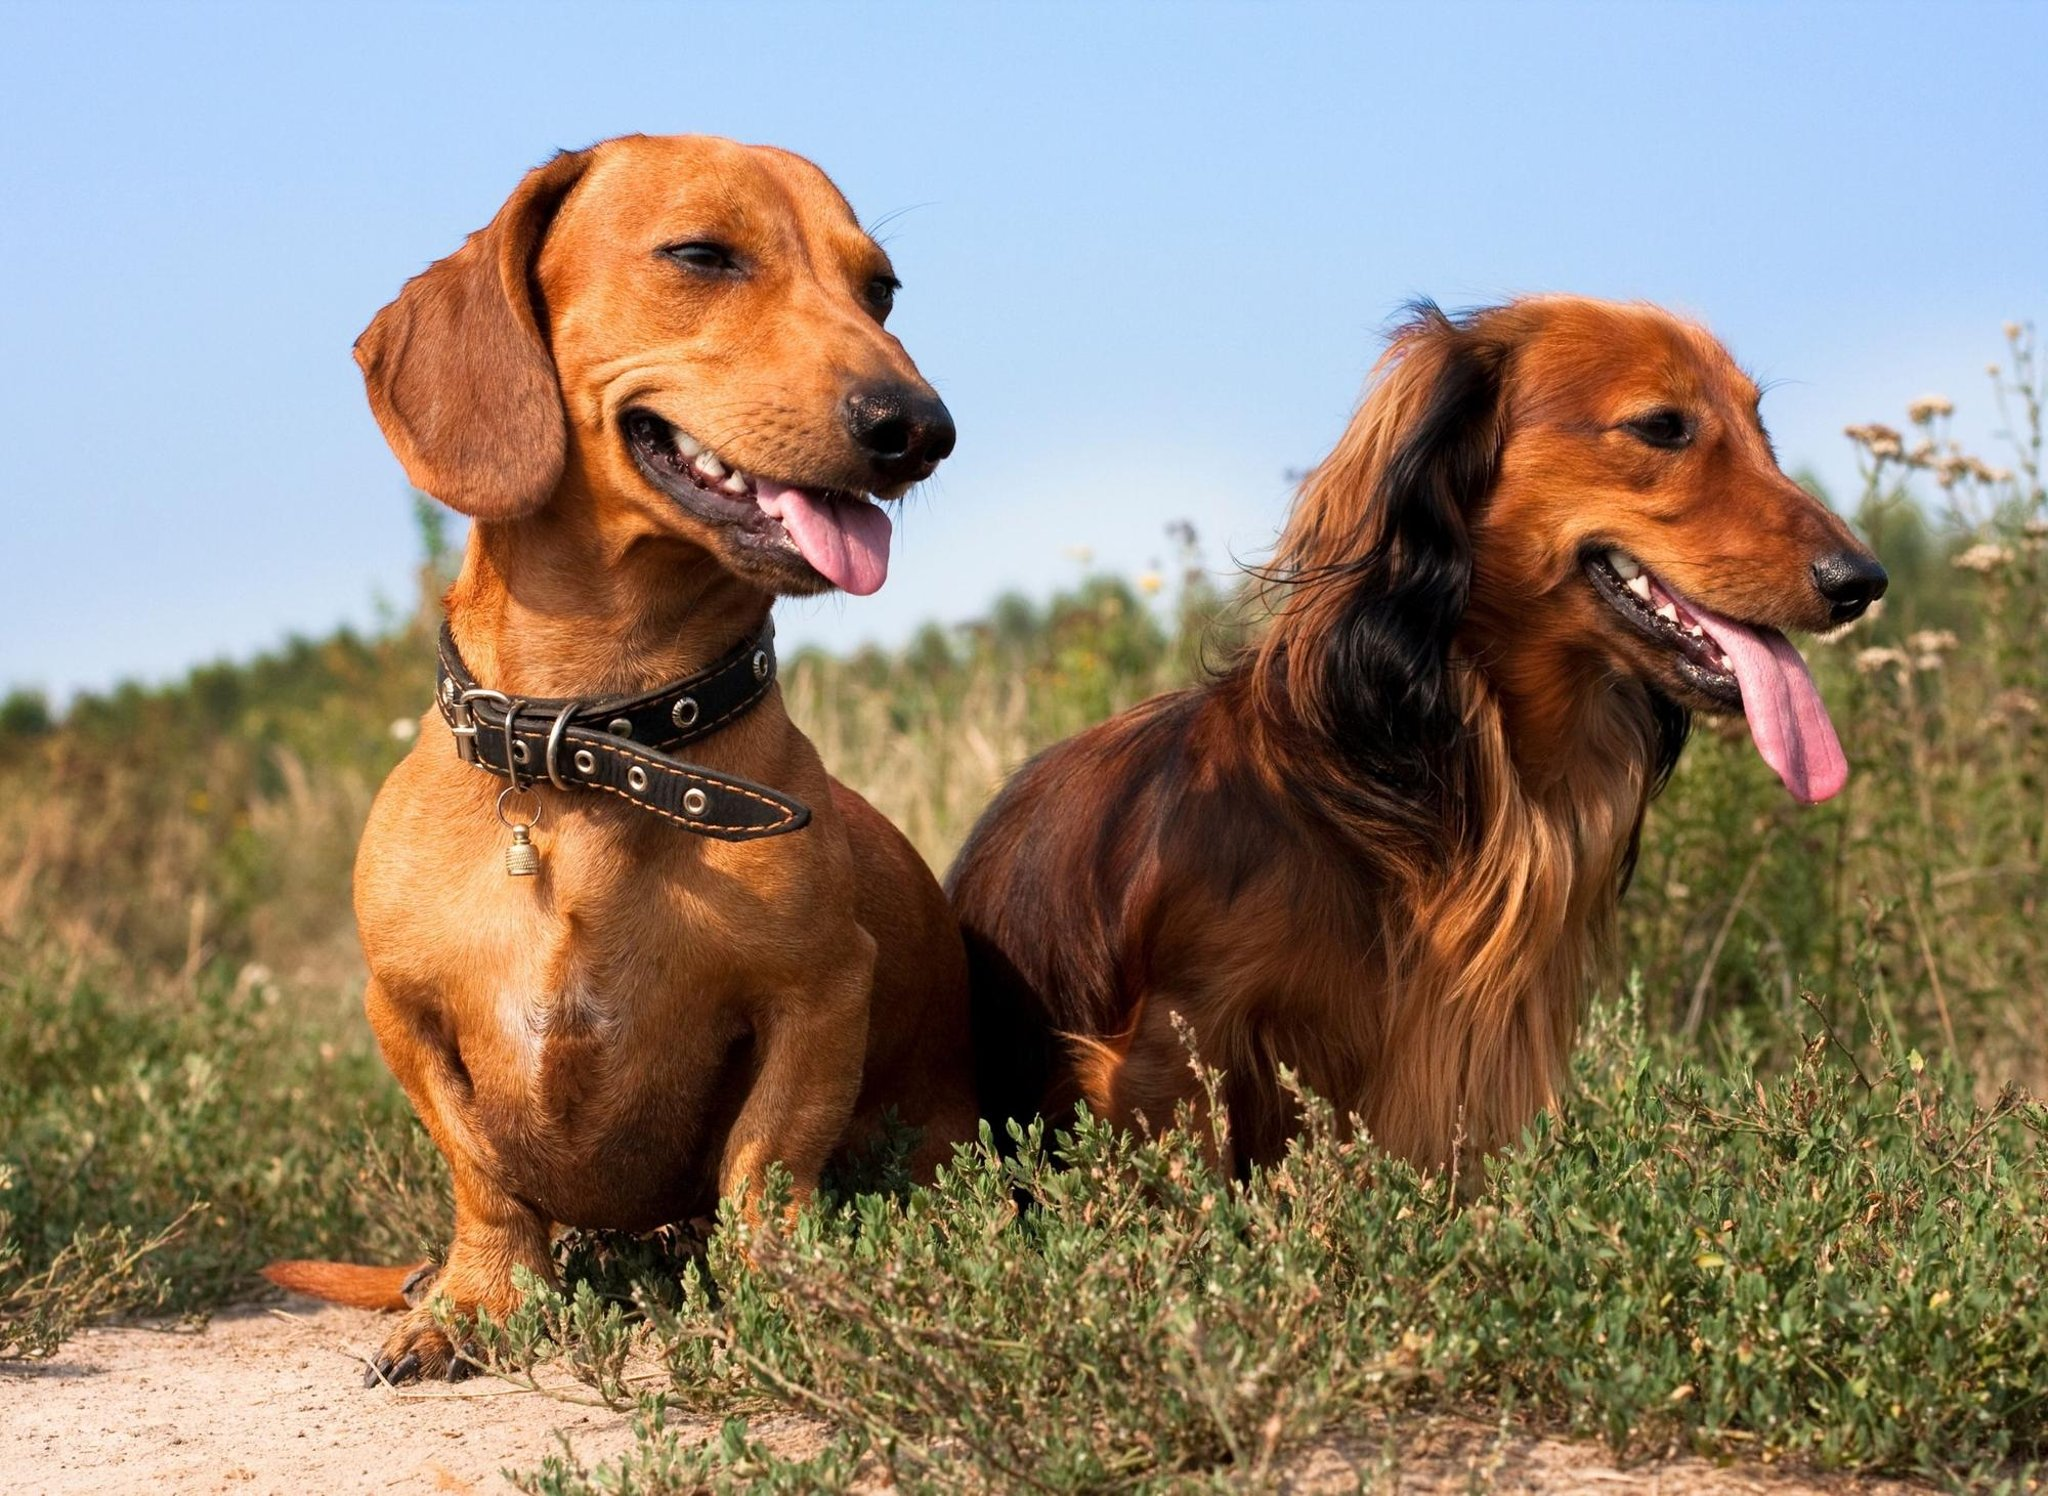 These are 10 fun and interesting dog facts about the adorable and cute Dachshund